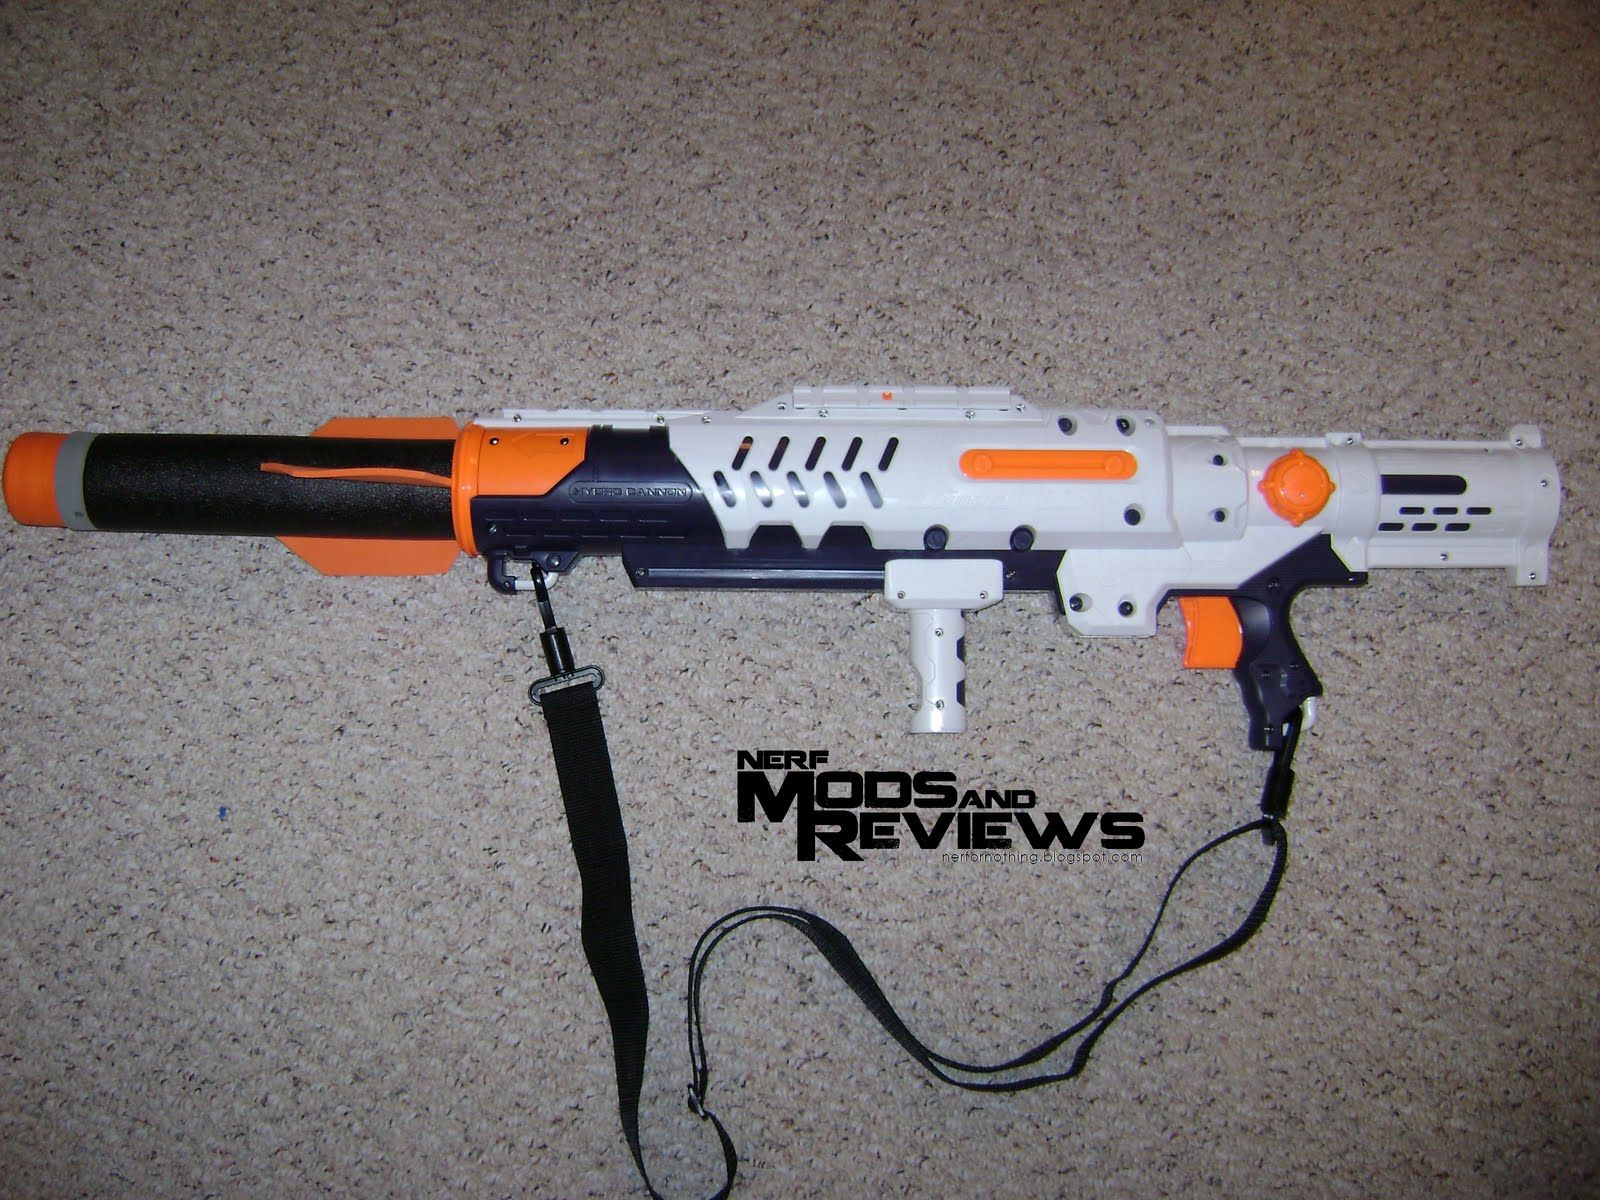 nerf rpg | Nerf Mods and Reviews: Nerf Hydro Cannon Mod